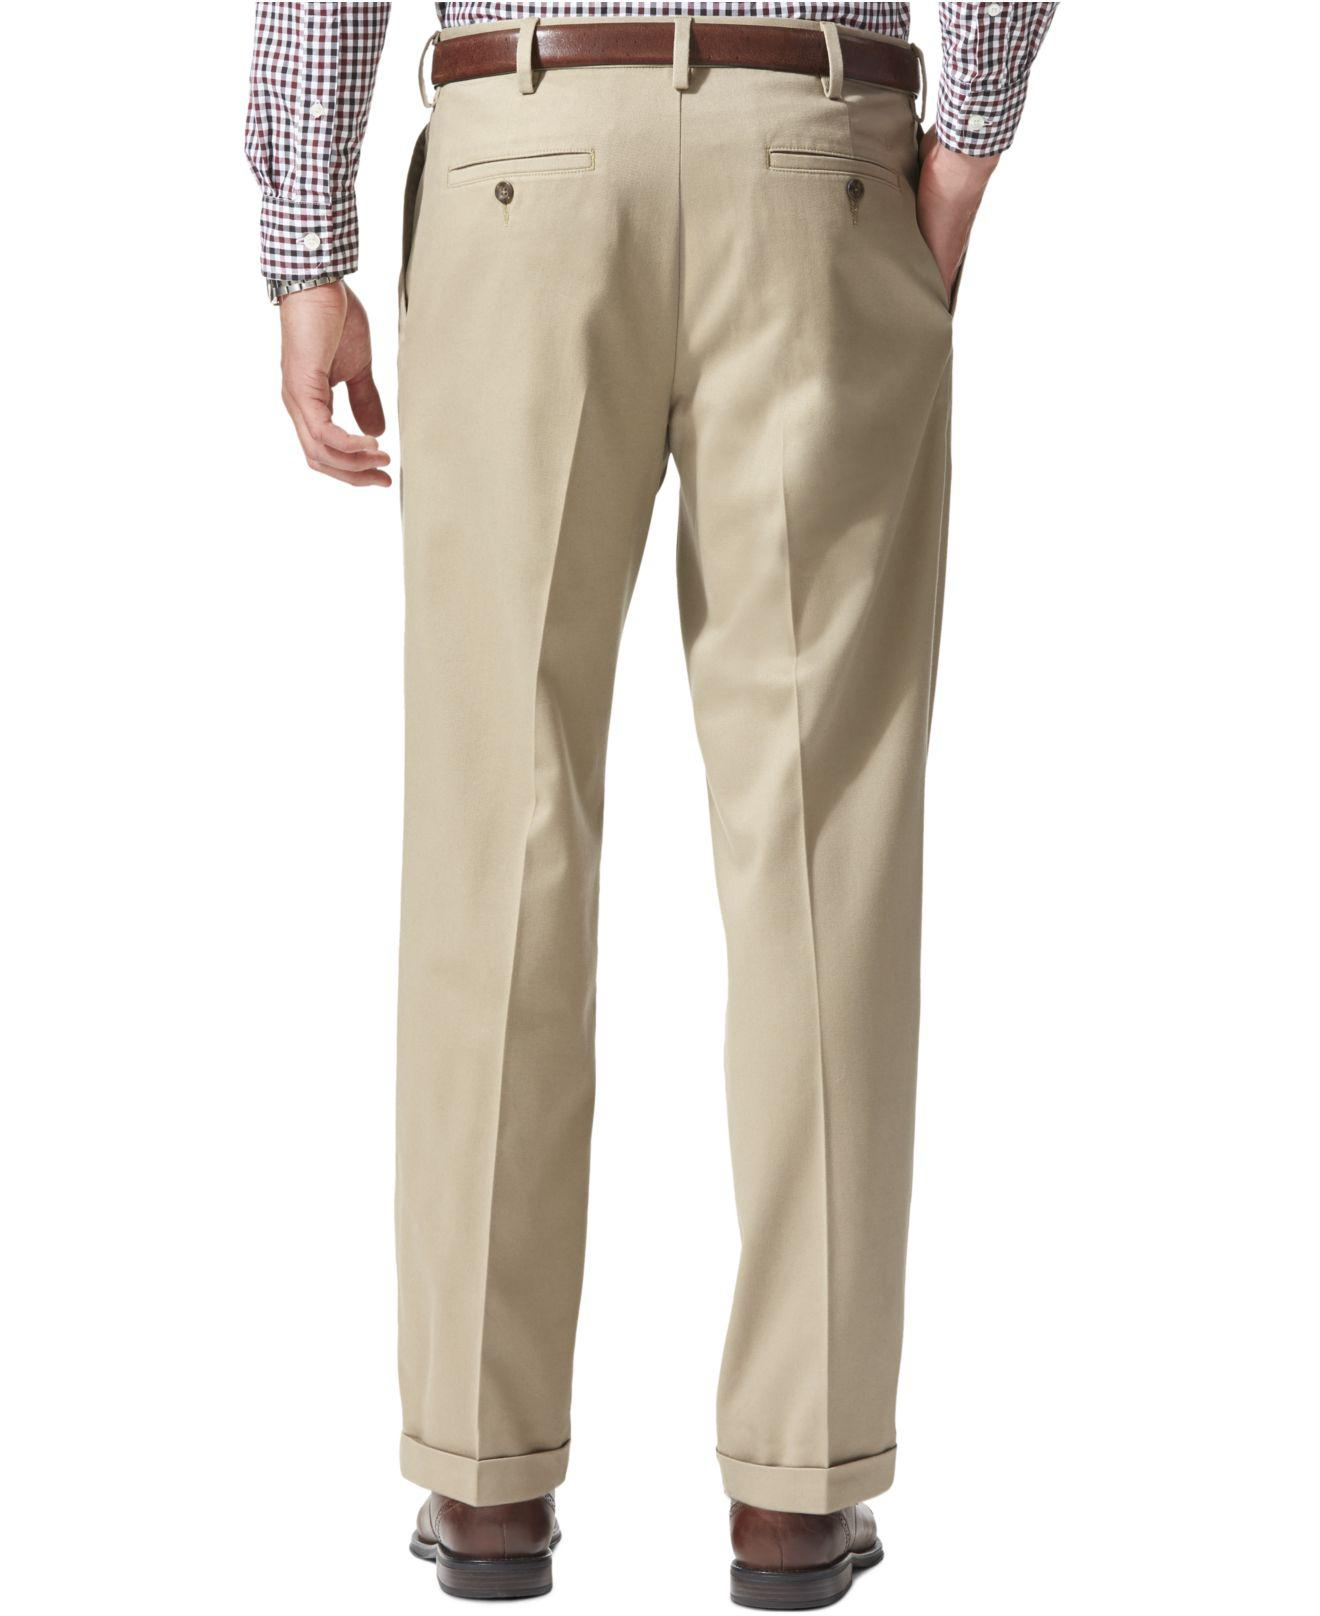 56821599a2878a Lyst - Dockers Relaxed Fit Comfort Khaki Pleated Pants in Natural for Men